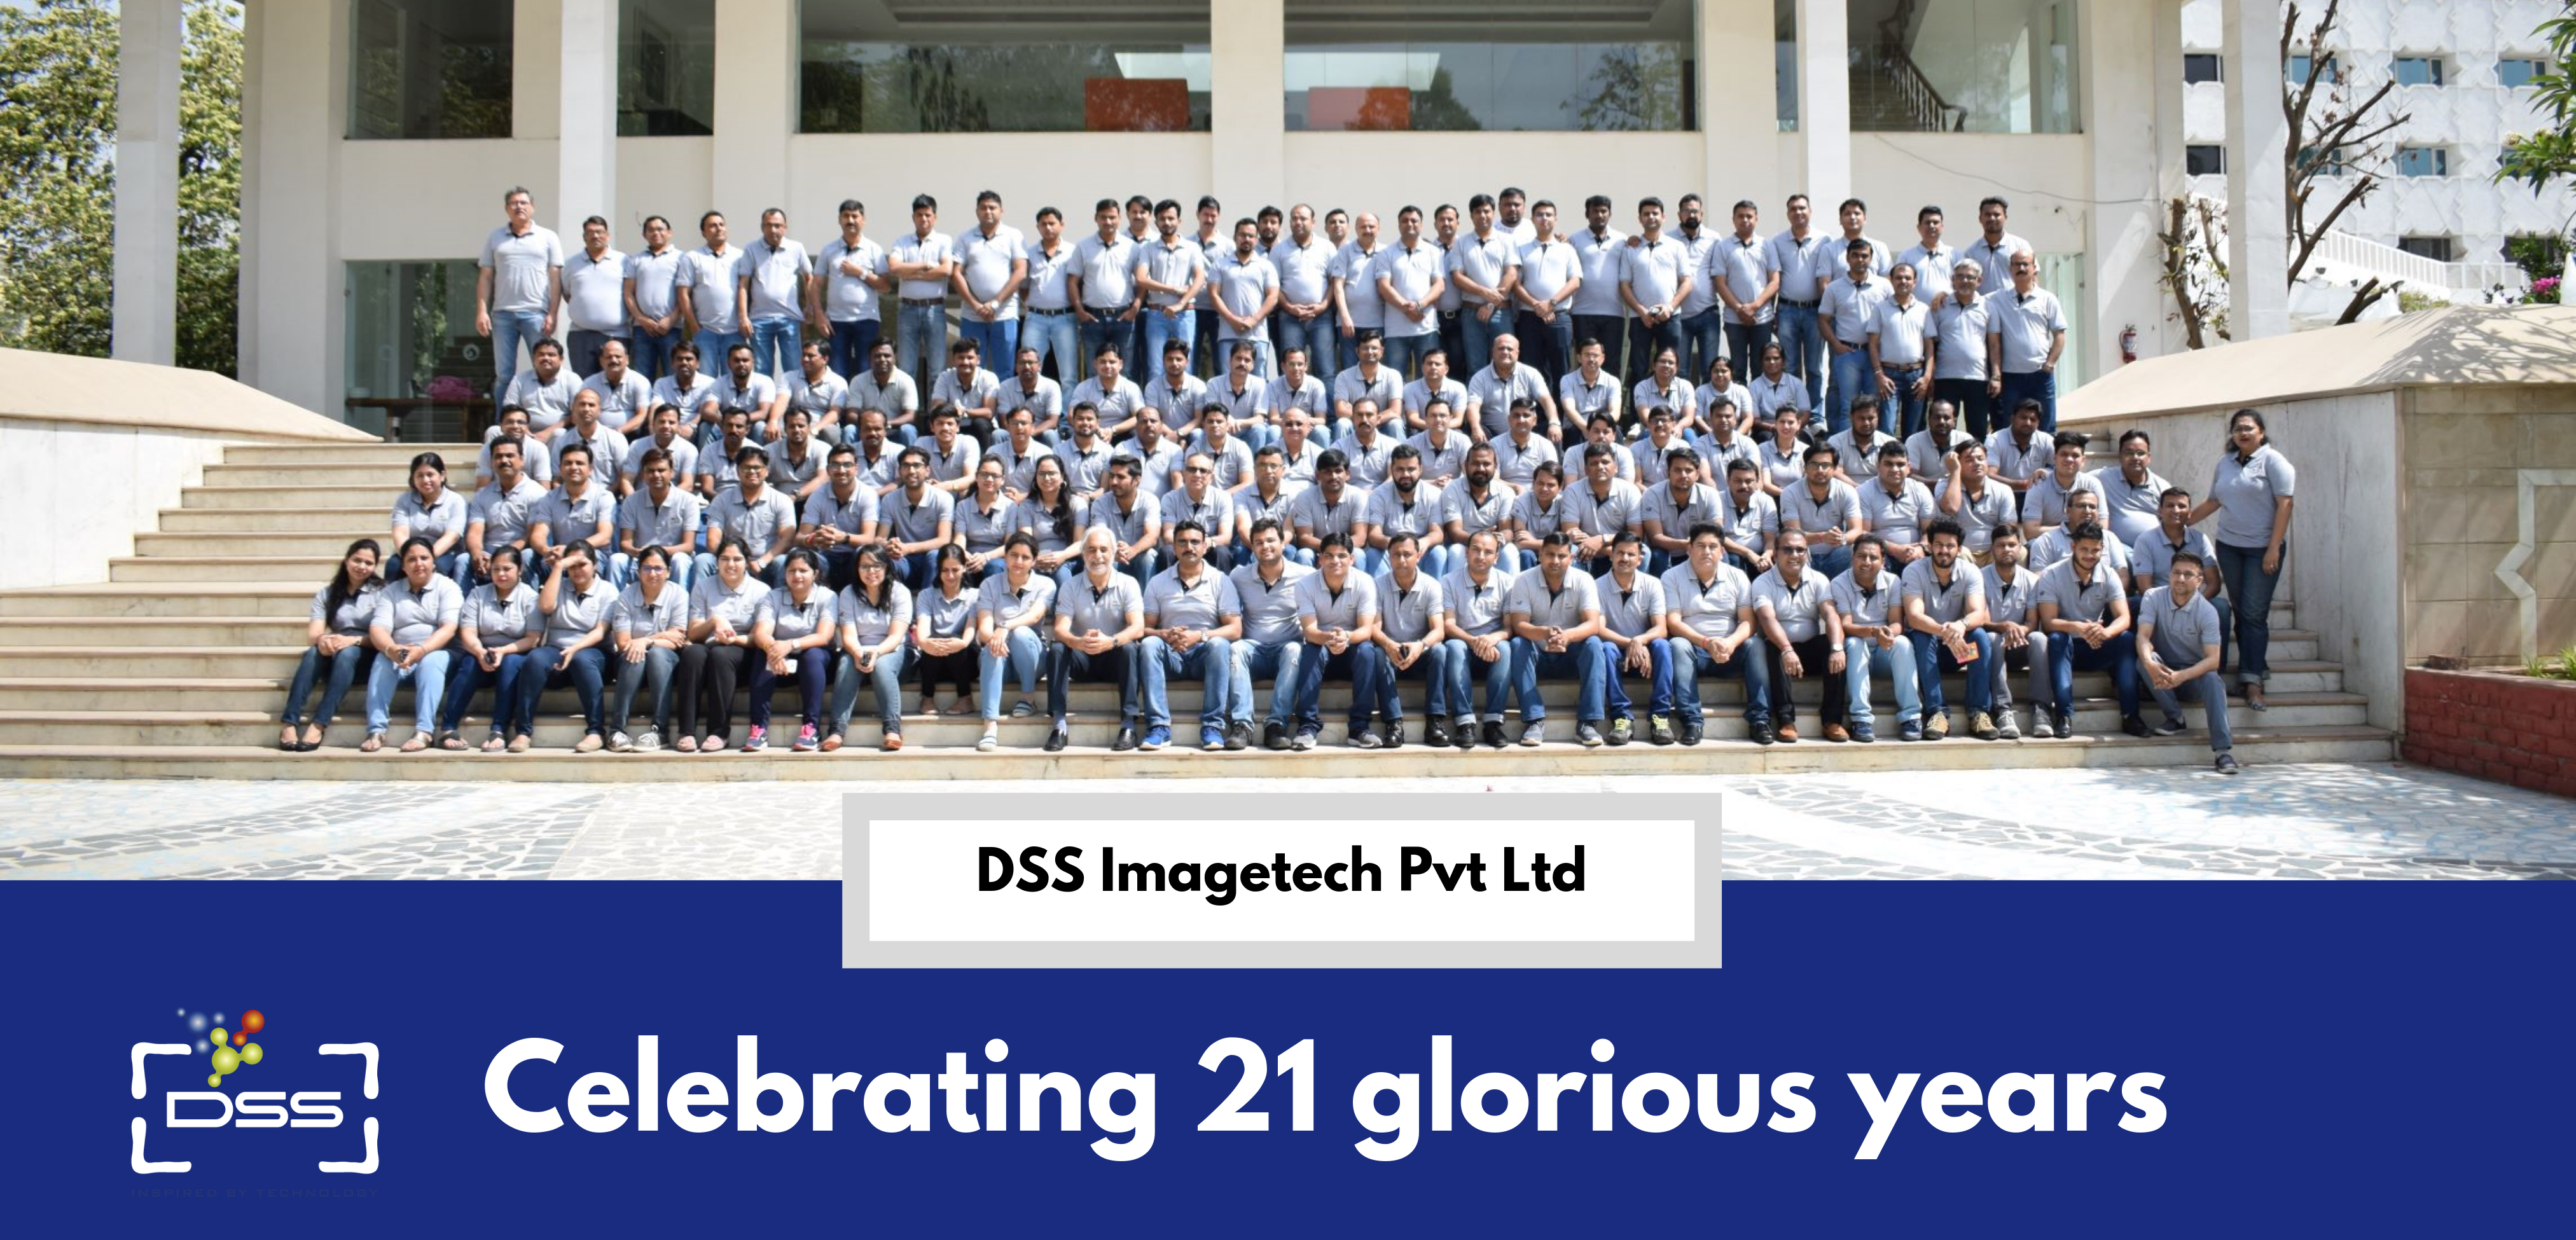 Celebrating 21 Glorious Years at DSS Imagetech